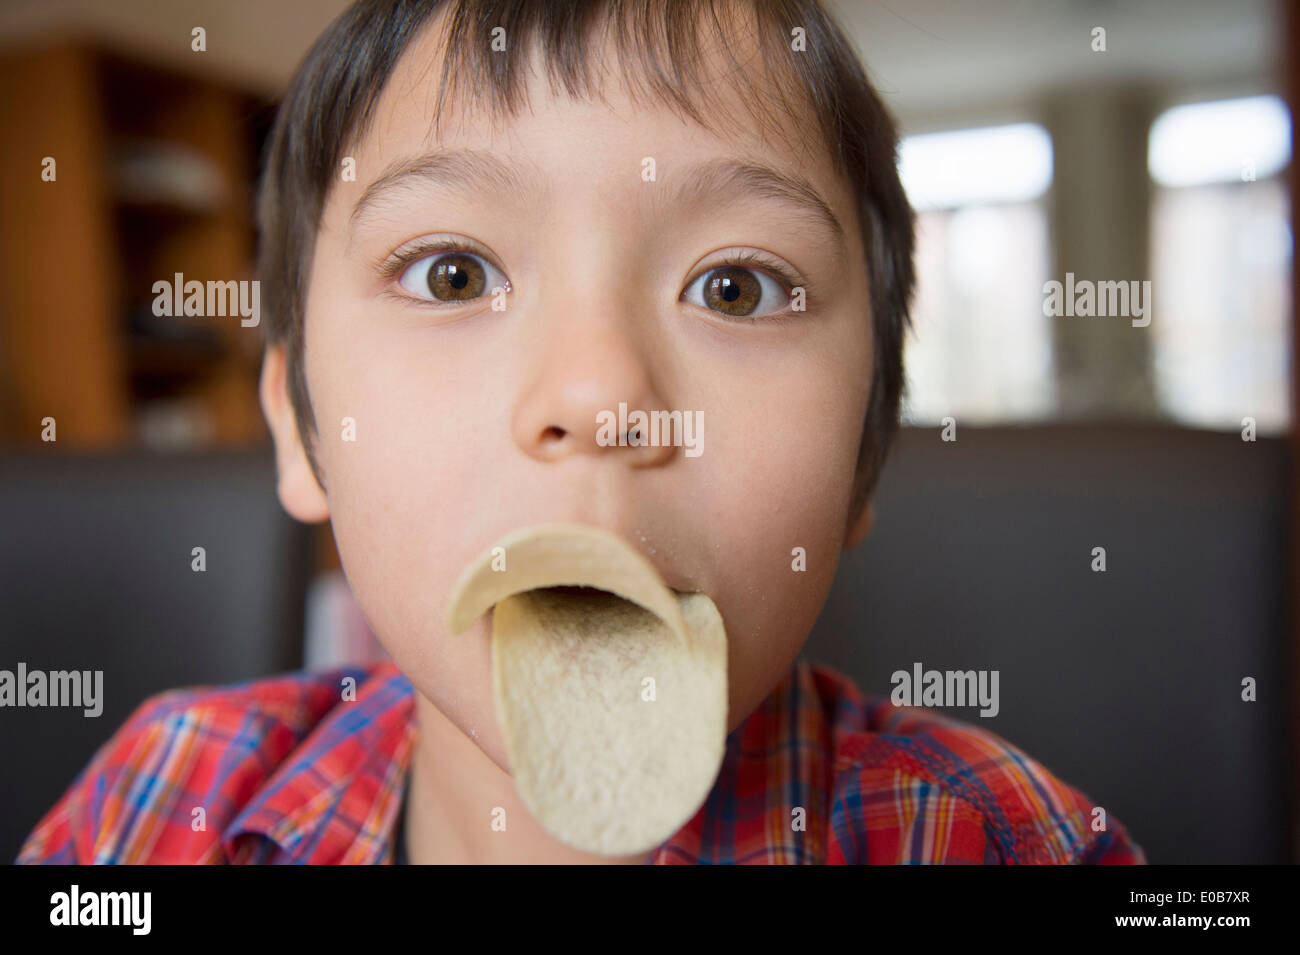 Boy imitating bird beak with crisps - Stock Image